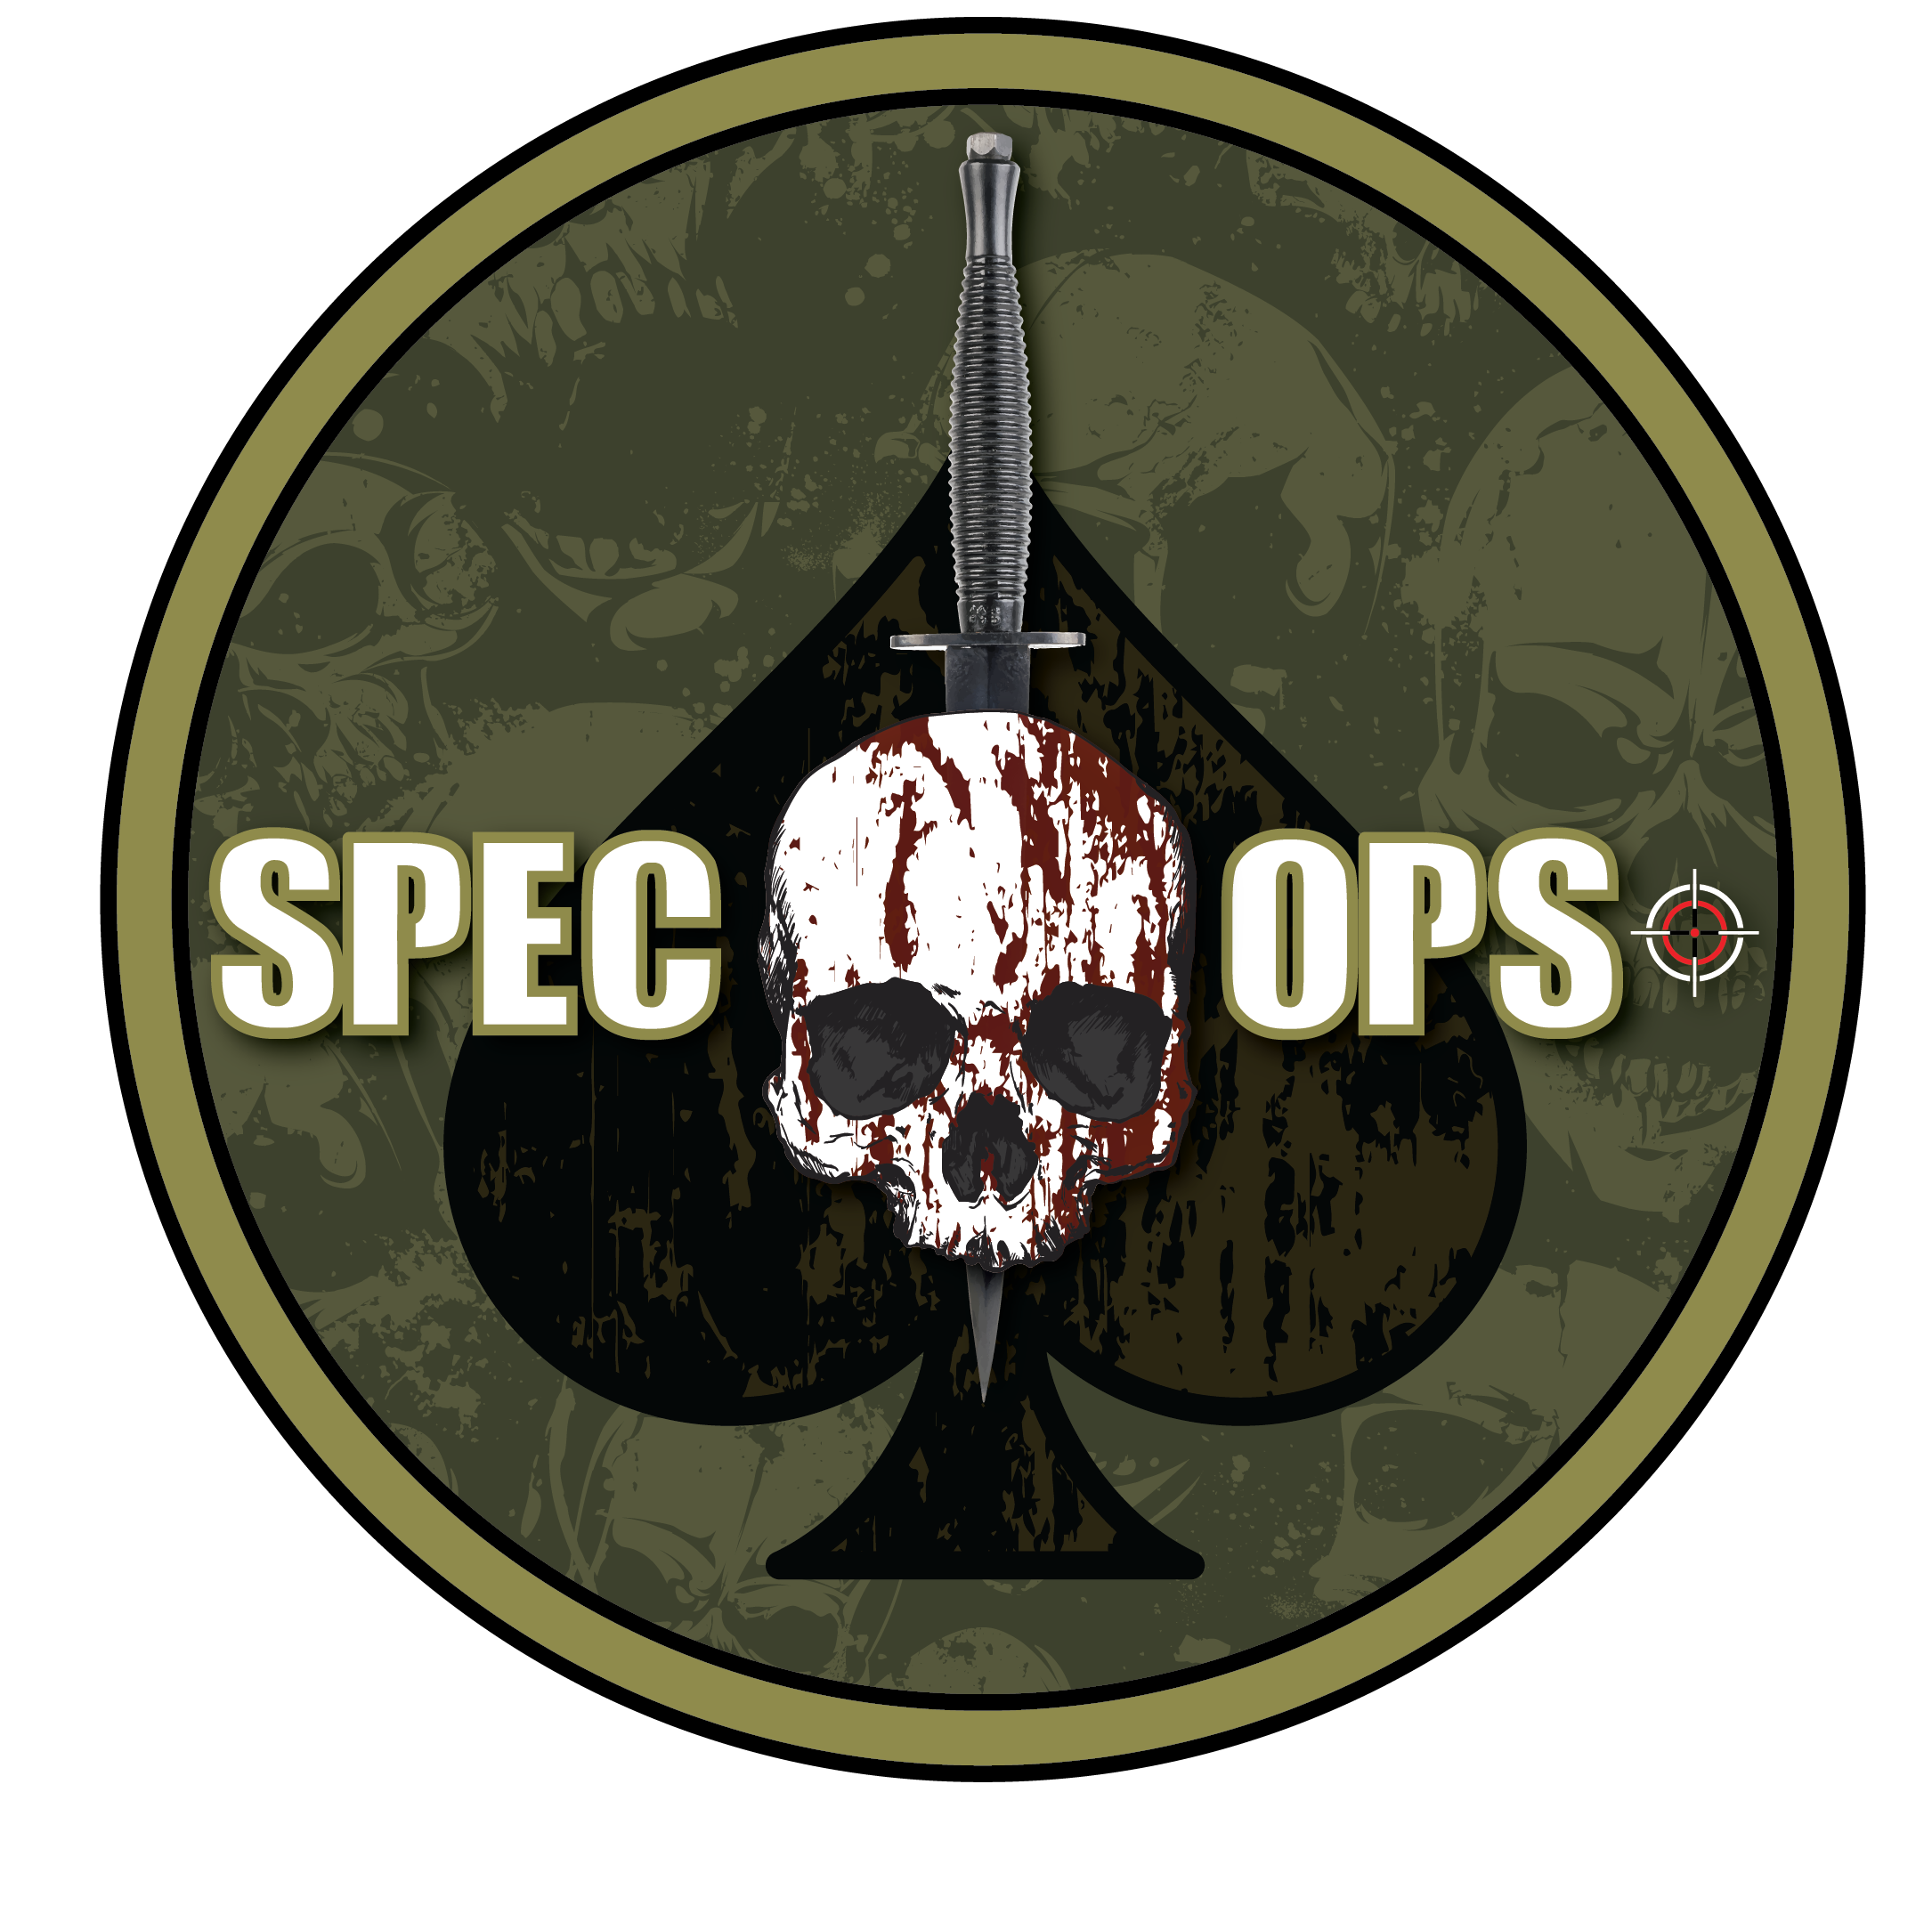 Spec Ops Airsoft | Bloxworth | Dorset